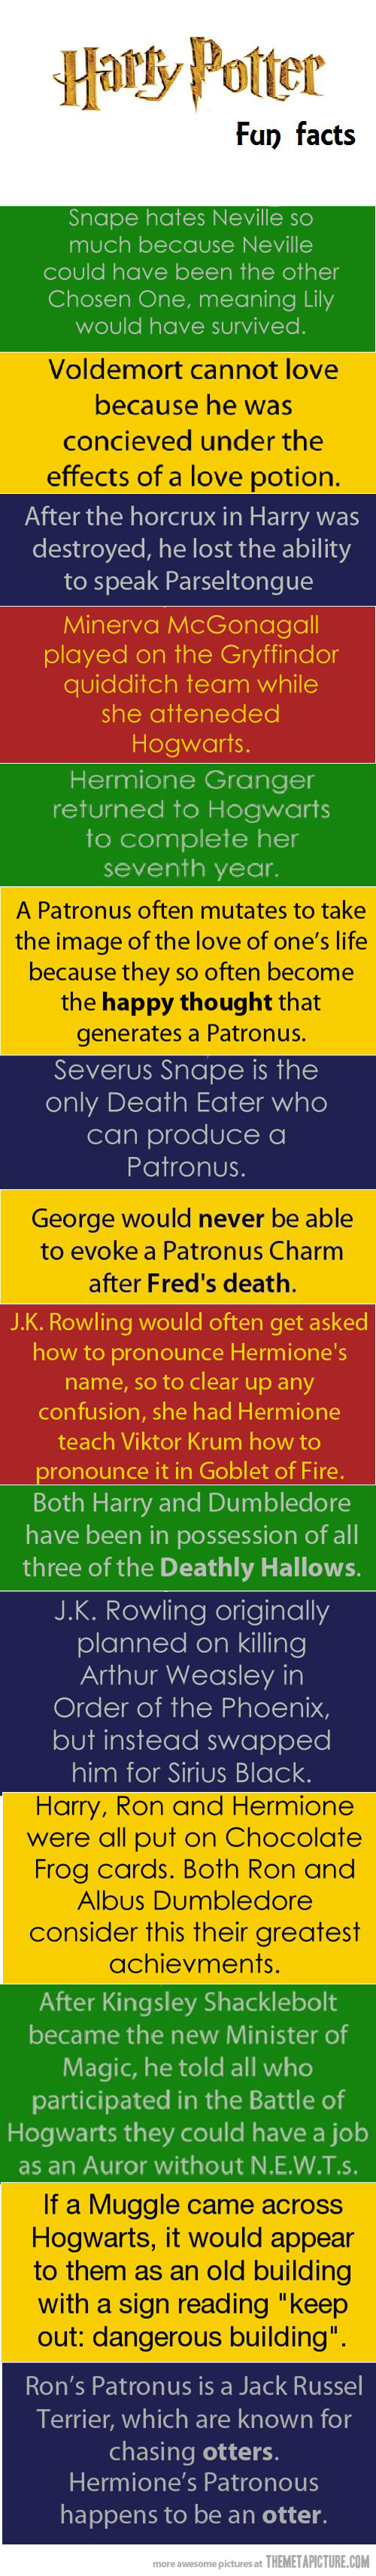 Harry Potter facts. <3